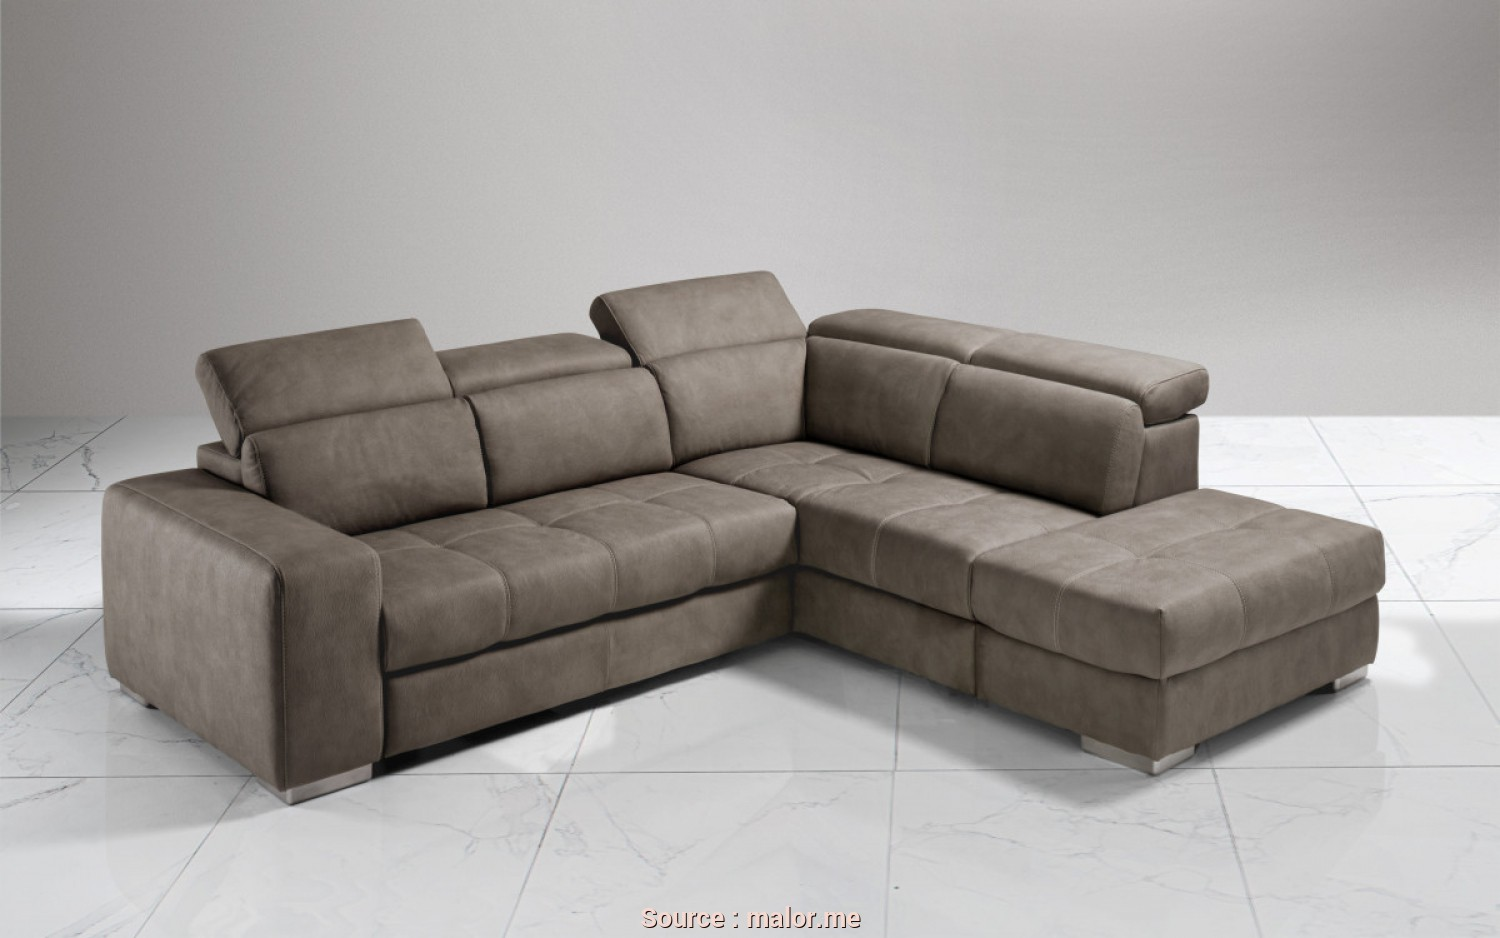 Casuale 4 Divano, Chaise Longue Mondo Convenienza